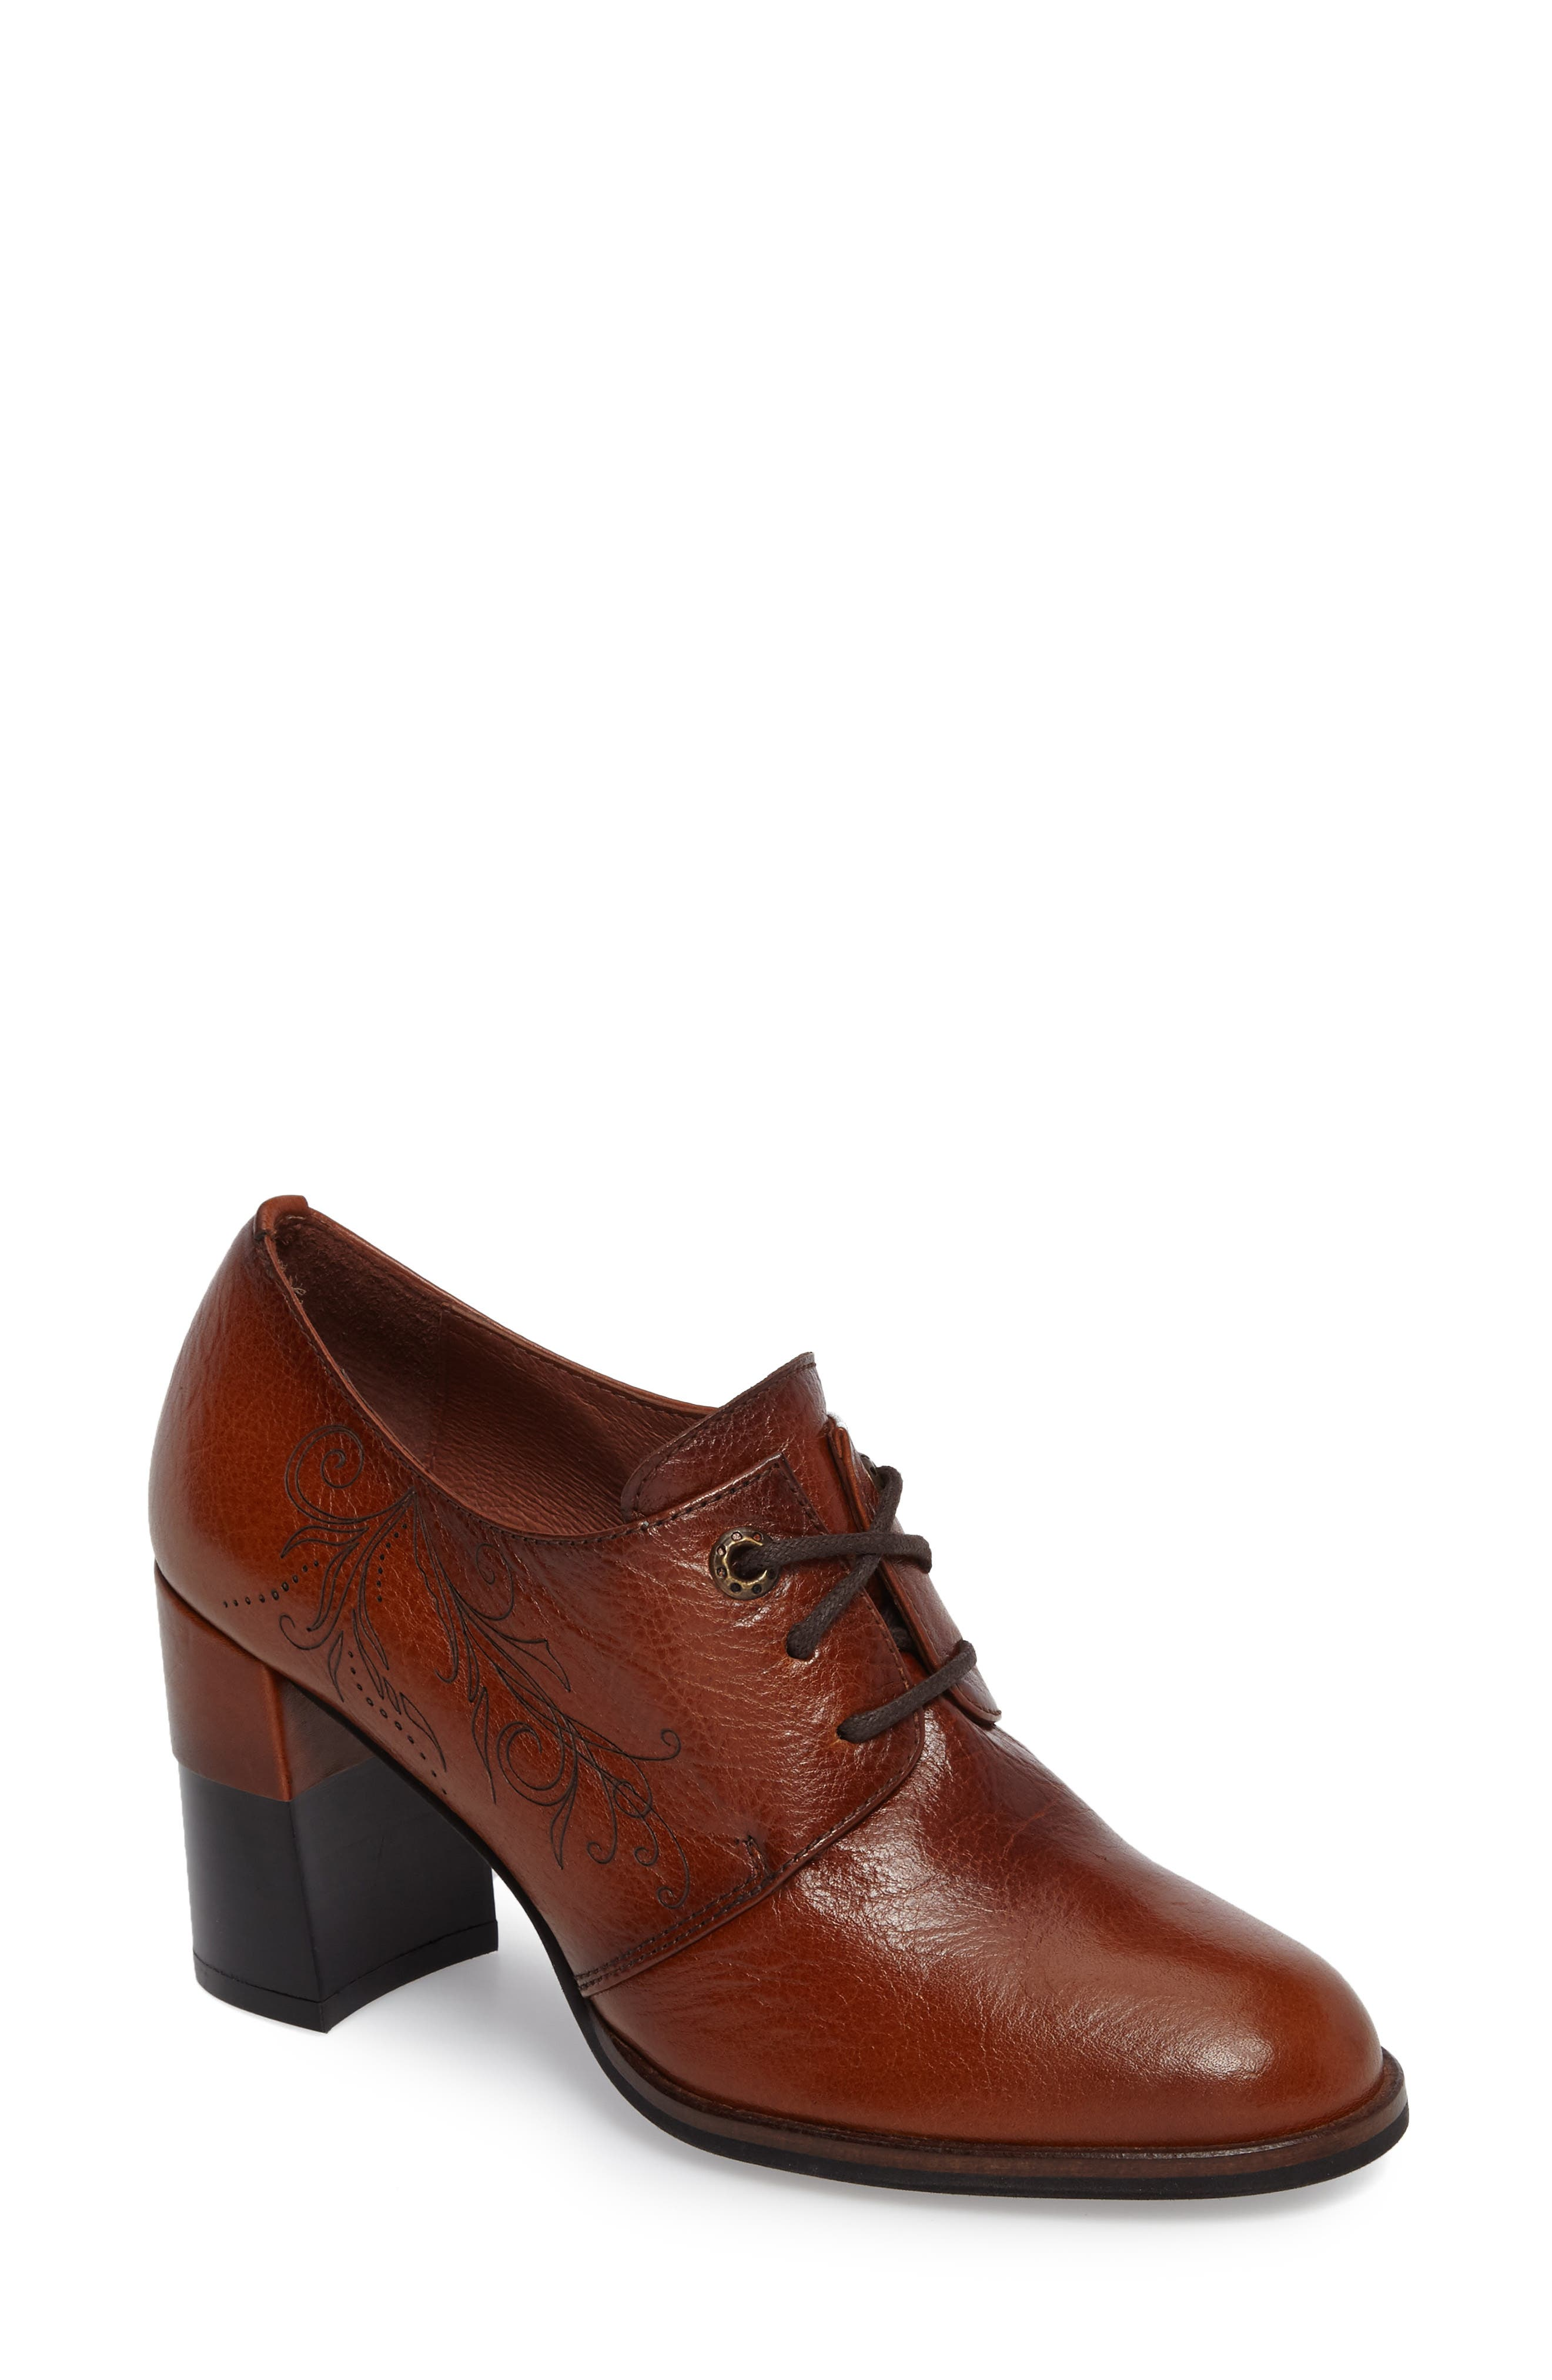 Main Image - Hispanitas Hayes Lace-Up Pump (Women)